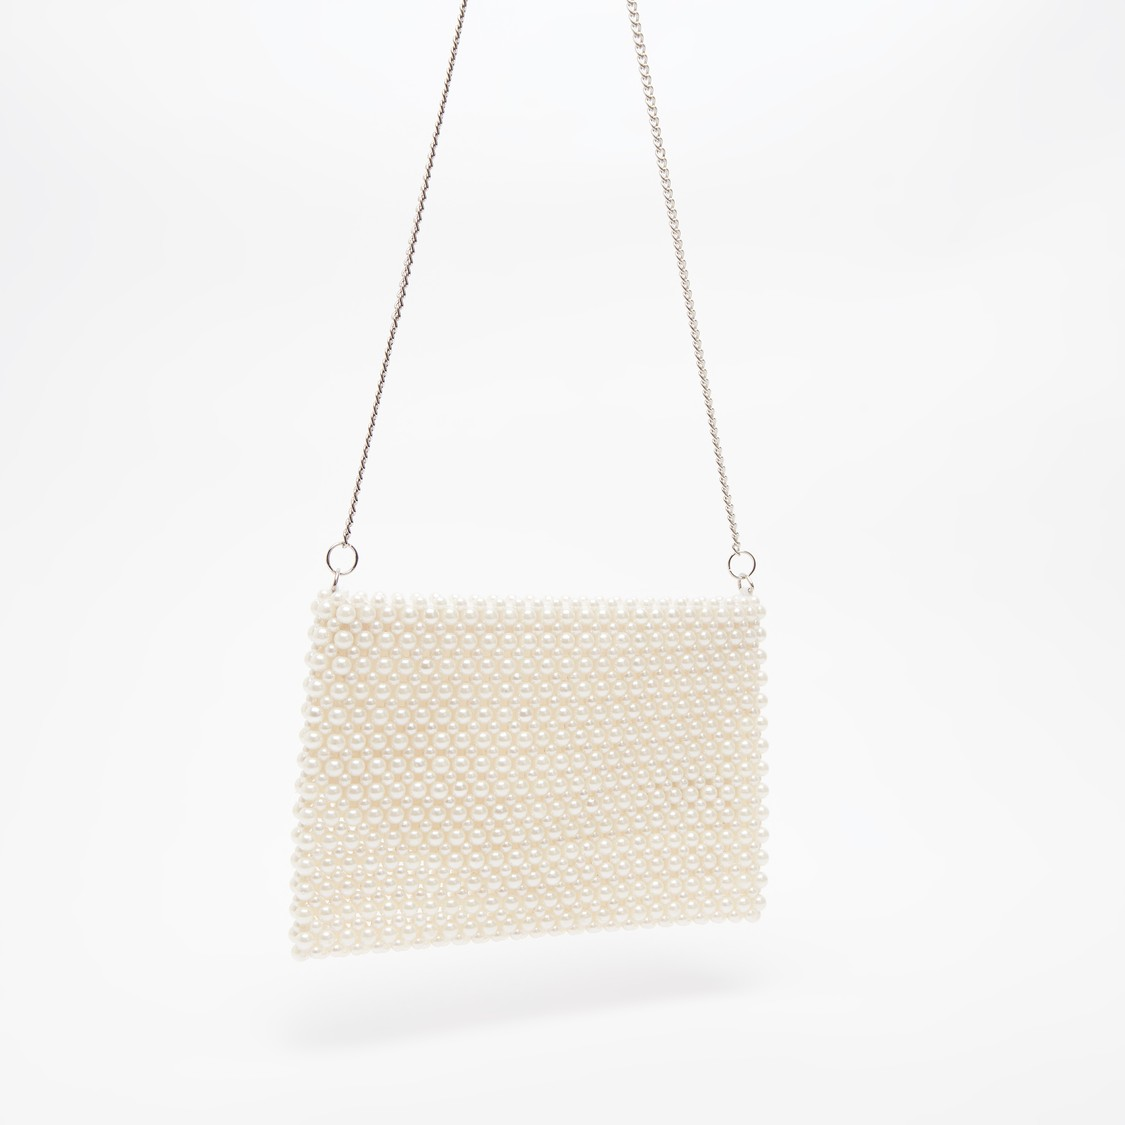 Pearl Detail Crossbody Bag with Metallic Chain and Zip Closure